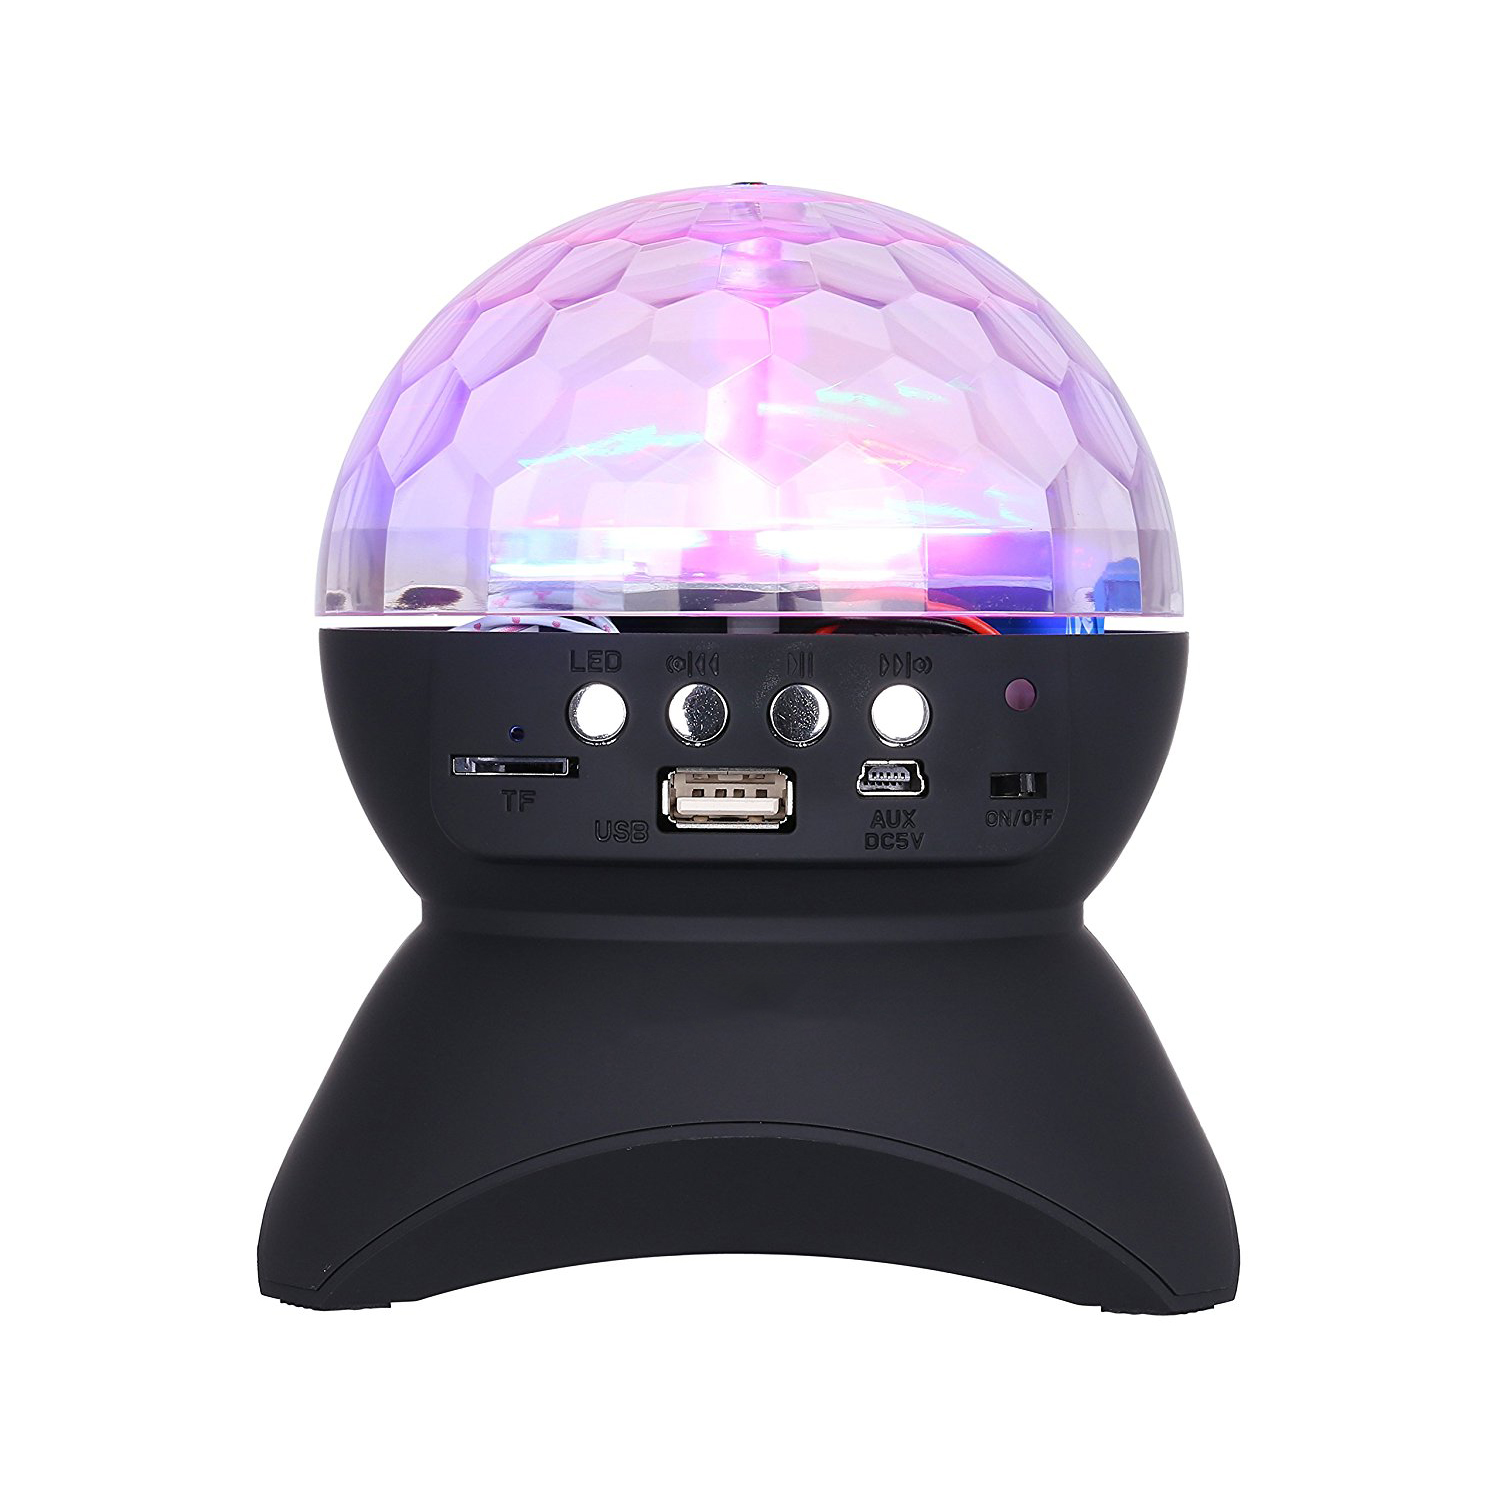 Led Stage Light with Wireless Bluetooth Speaker Support TF Card , Music , FM radio with USB for Parties , DJ etc. - Black kubei 290 wireless bluetooth v3 0 speaker w fm radio black